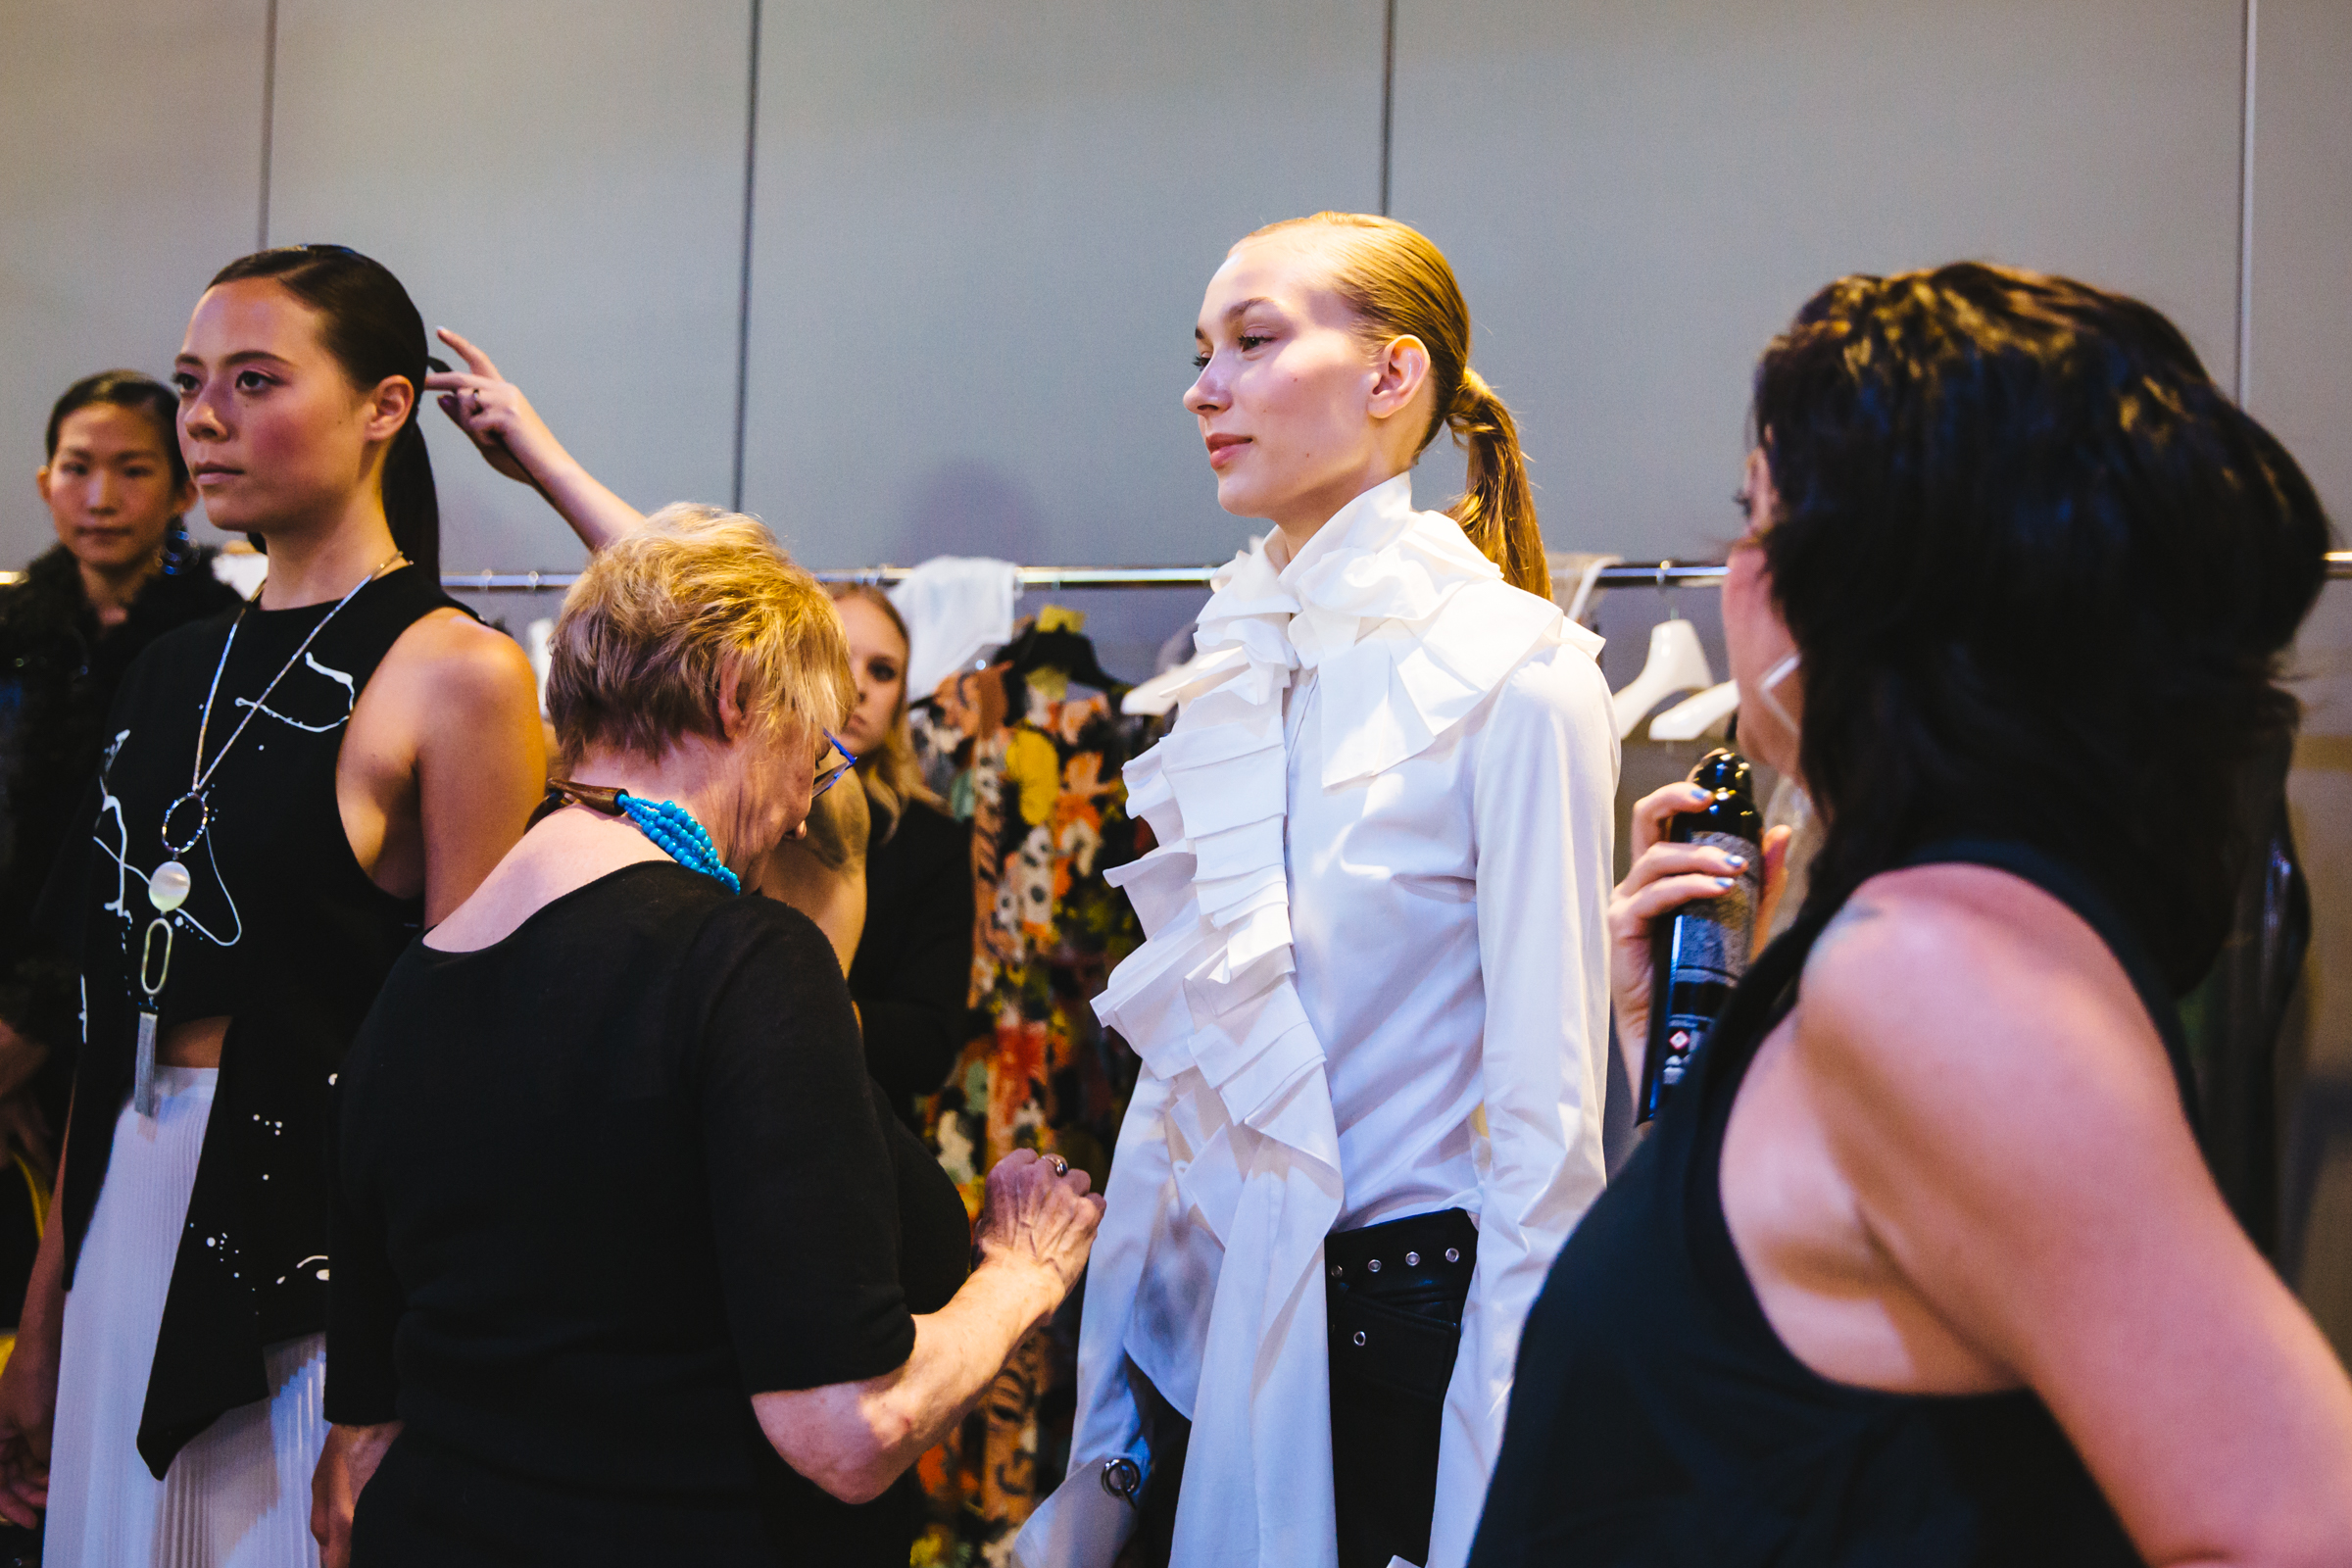 Last night was the annual Nordstrom Designer Preview Fall 2017!  One of the biggest events of the year, the shindig showcases designers new looks for this upcoming fall. This year for the first time, instead of a runway show models participated in interactive vignettes - like an amazing ballet funk performance - and of course a boutique where you can check out pieces from the show and buy them there. We went behind the scenes to watch the magic that goes into getting the girls ready for their model debut! (Image: Sunita Martini / Seattle Refined)